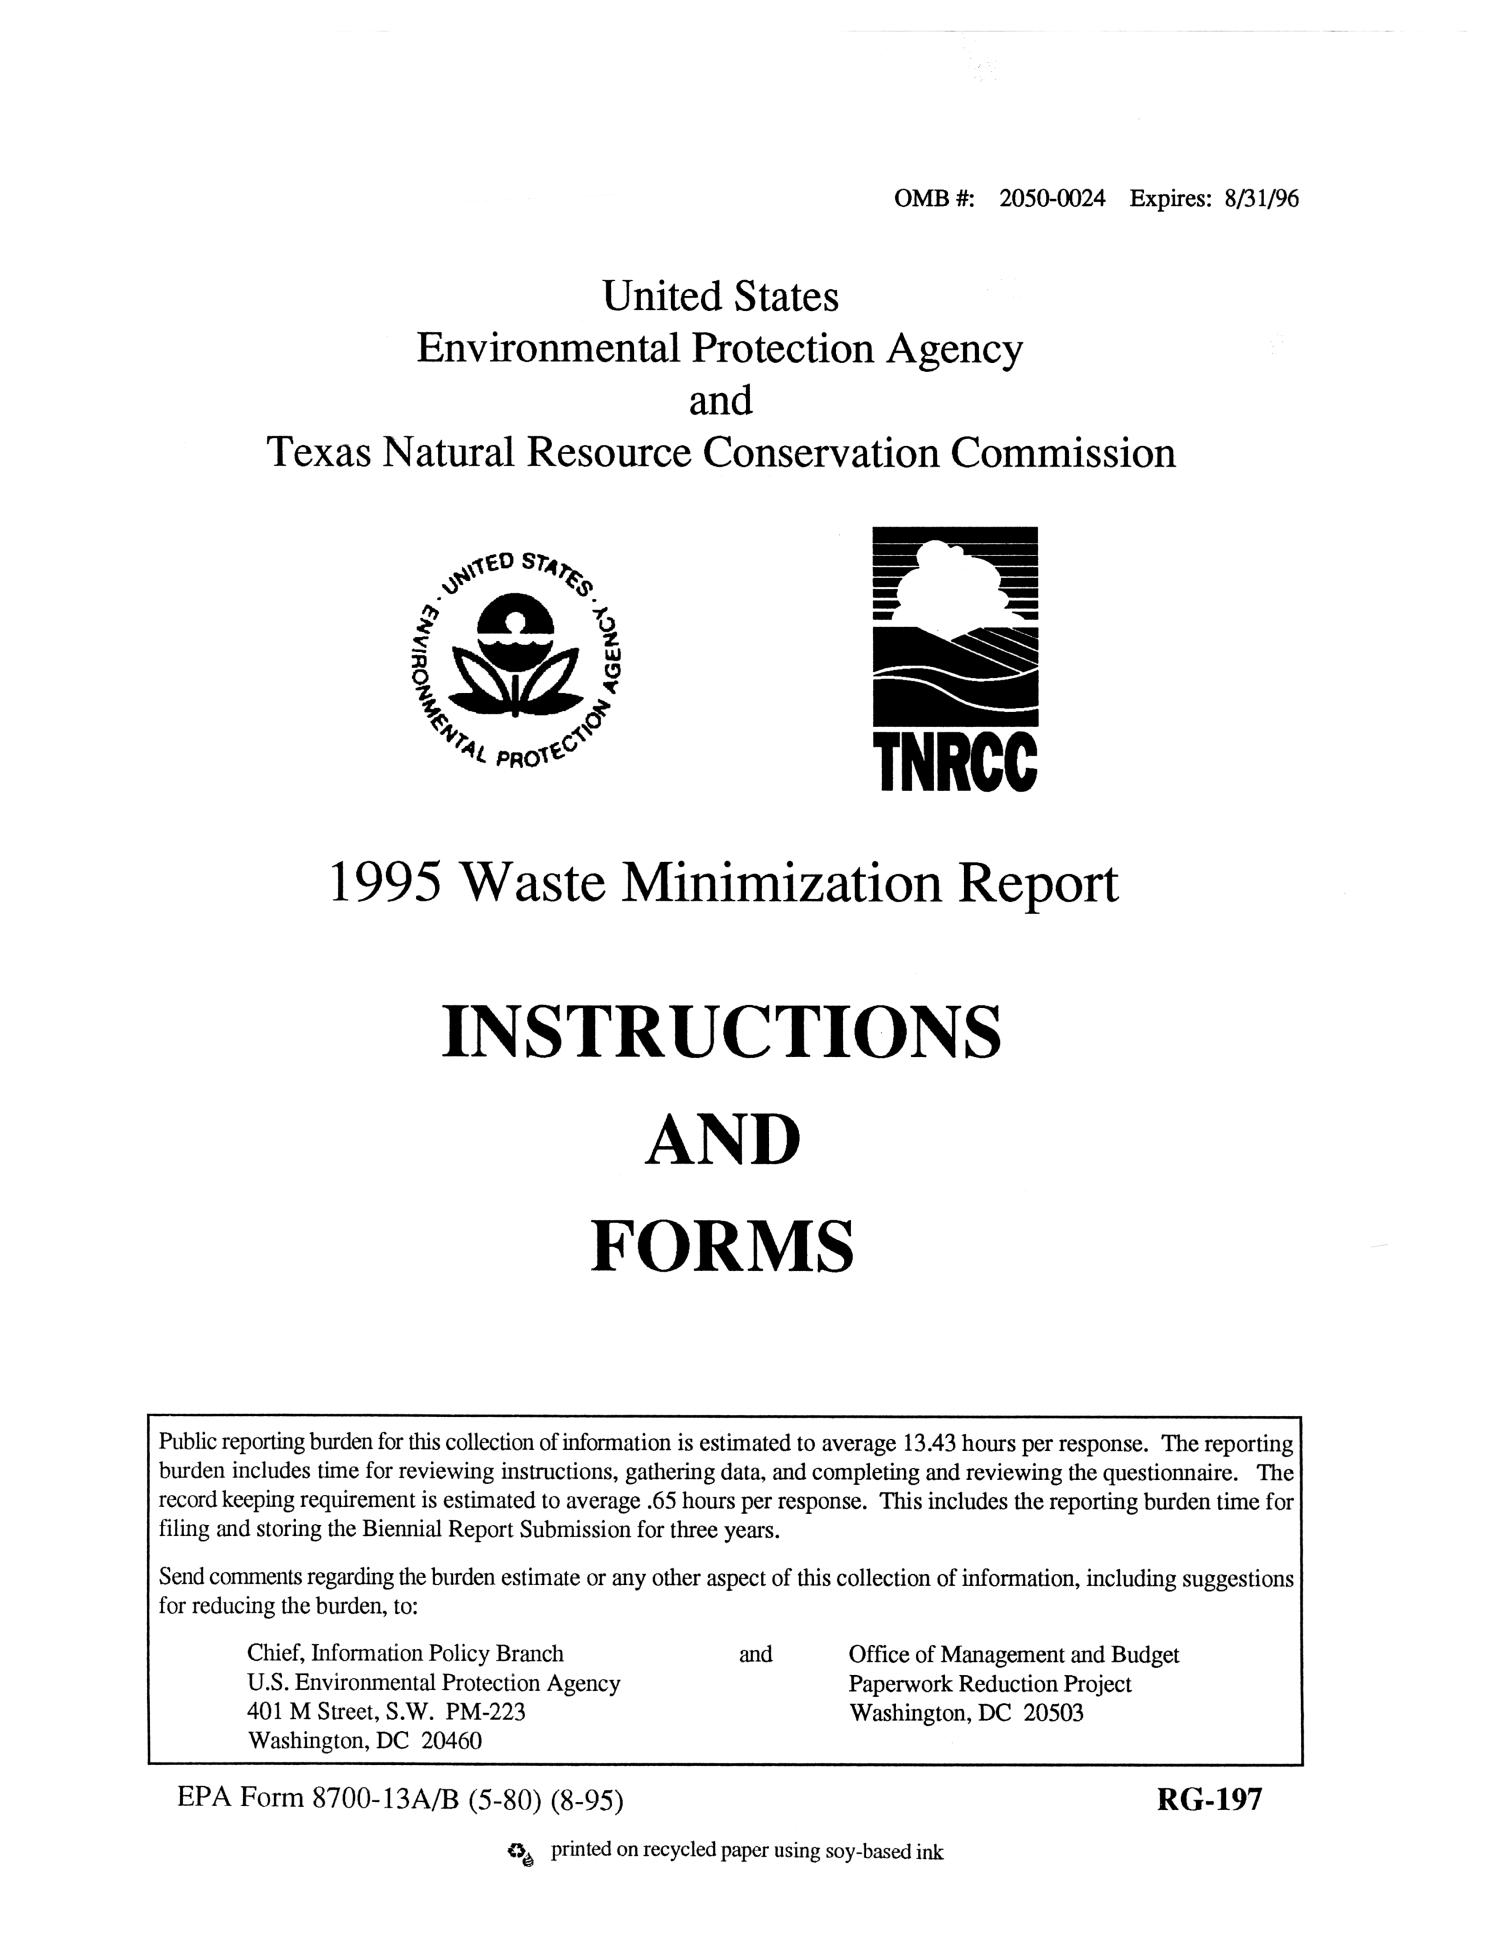 1995 Waste Minimization Report Instructions and Forms                                                                                                      [Sequence #]: 1 of 102